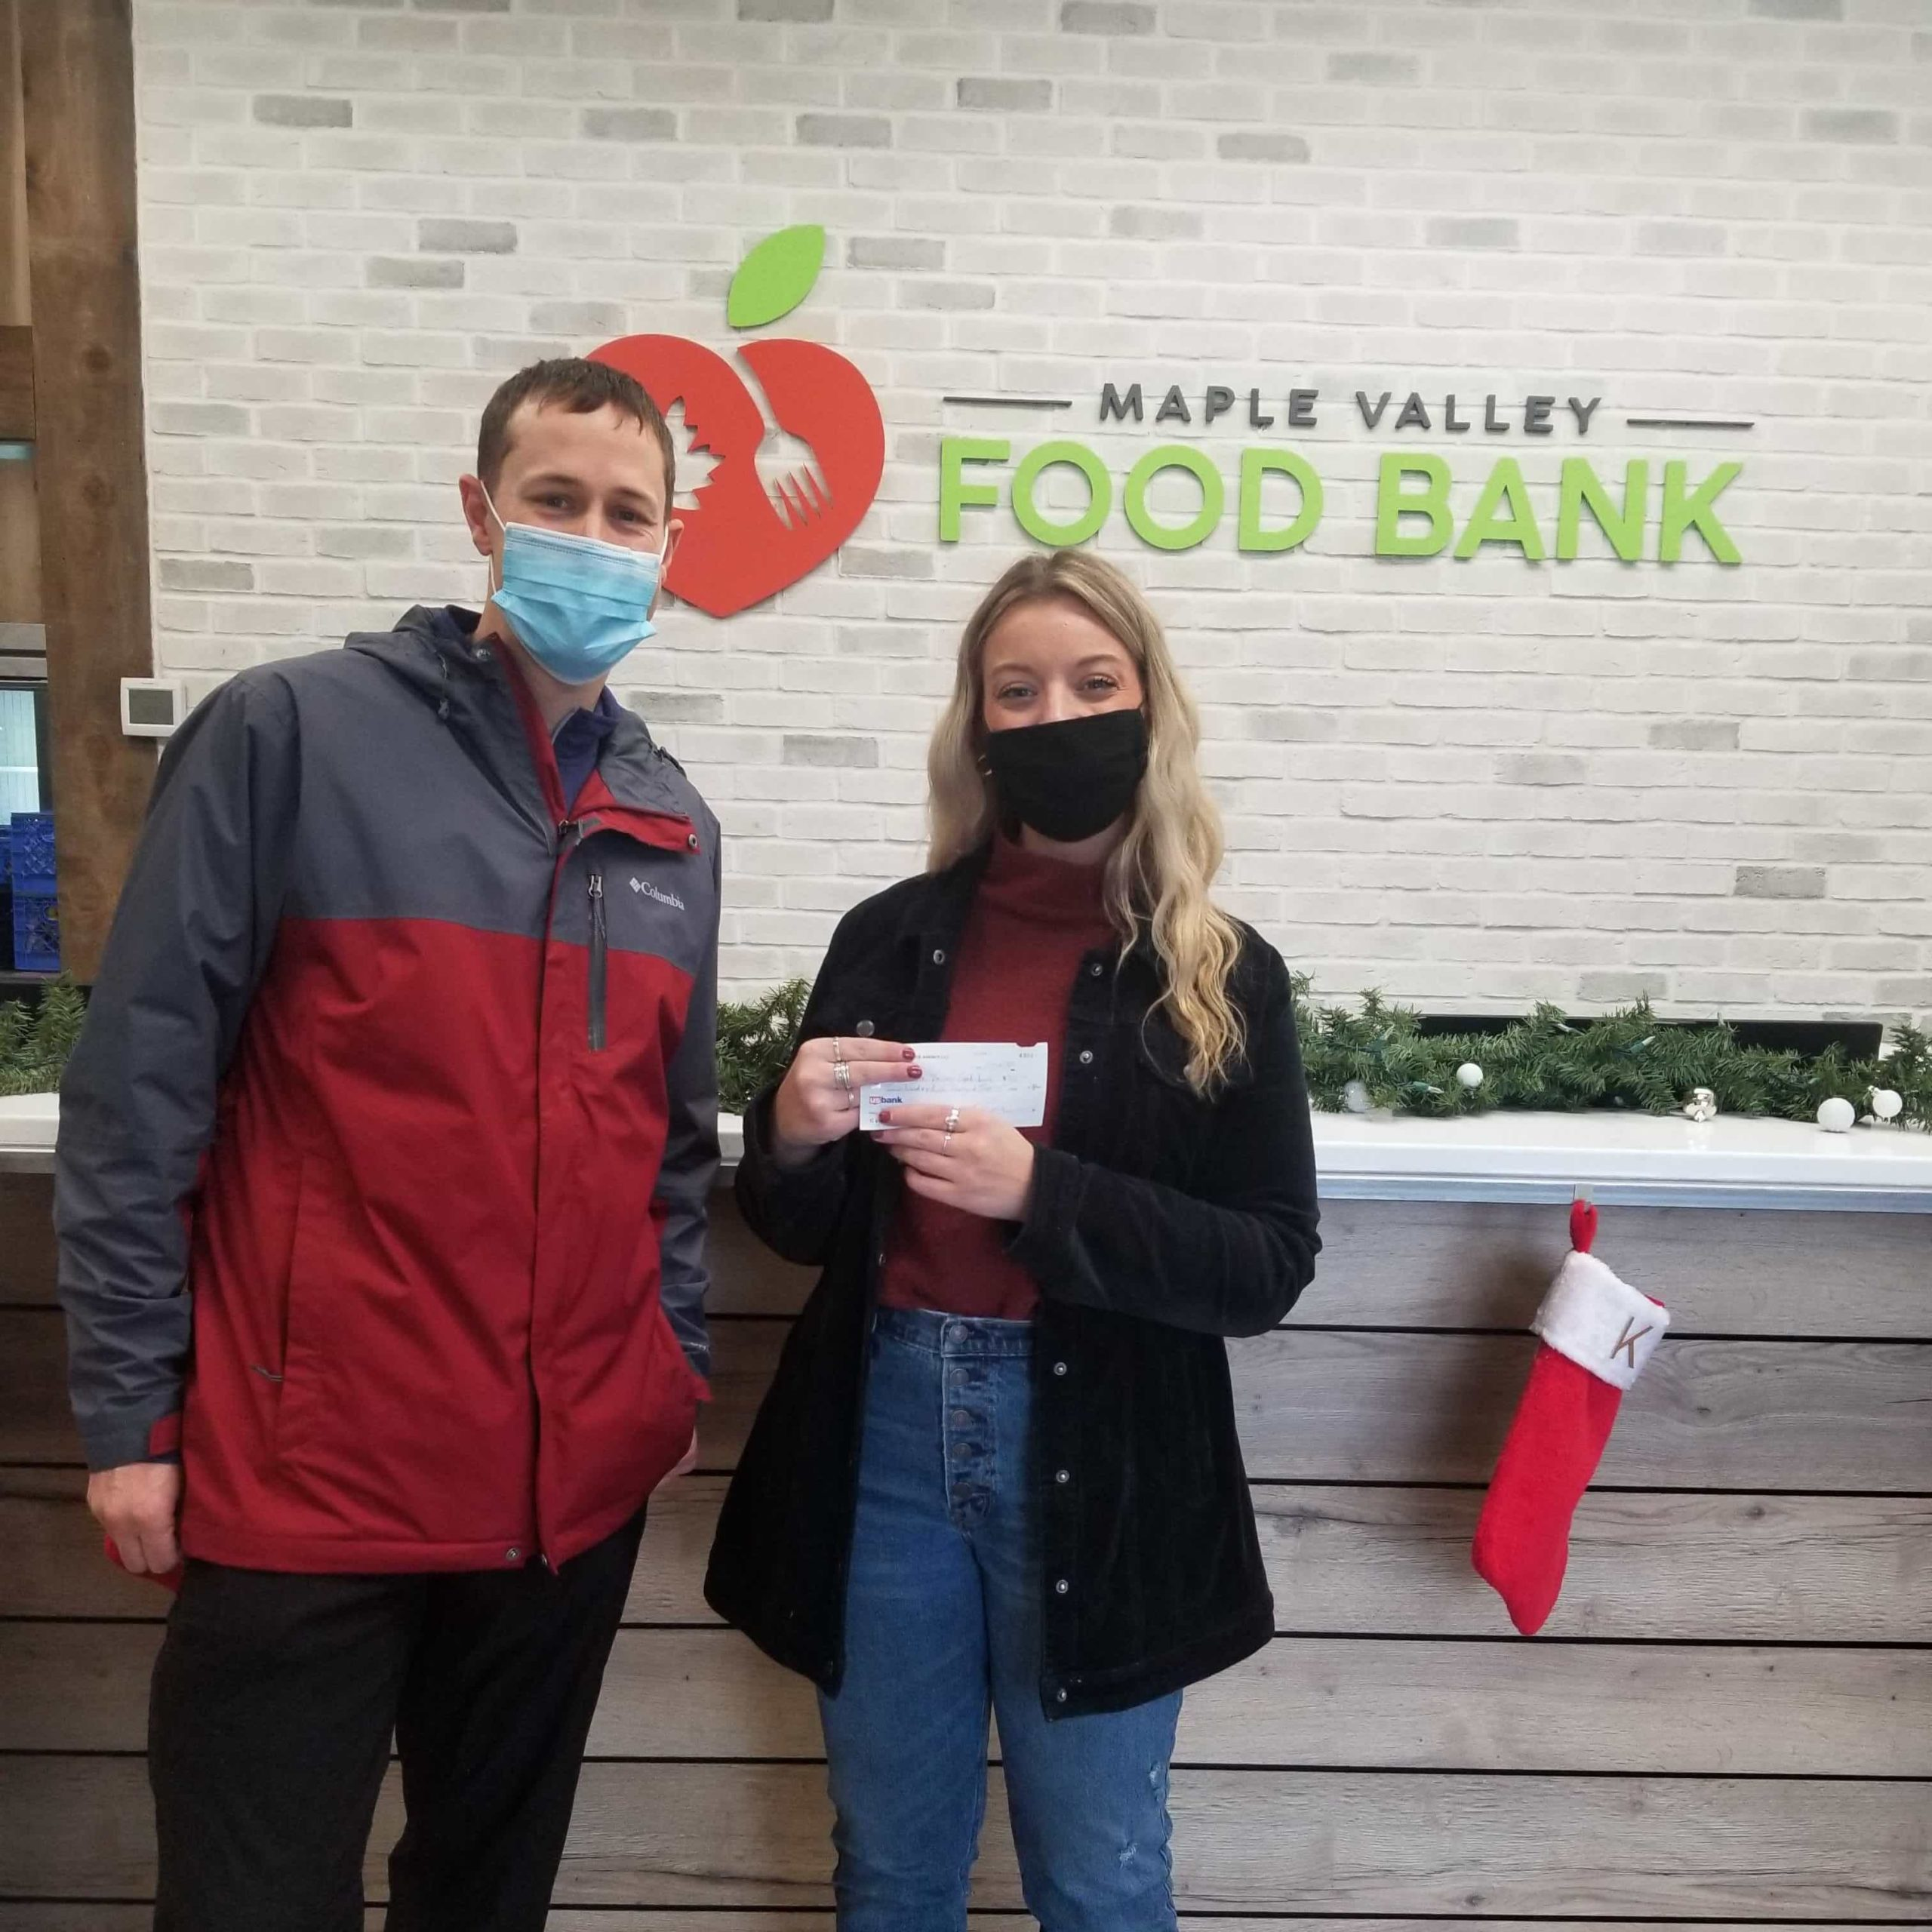 Ryan Stueber from PNW Insurance Group dropping off donation check to Maple Valley Food Bank